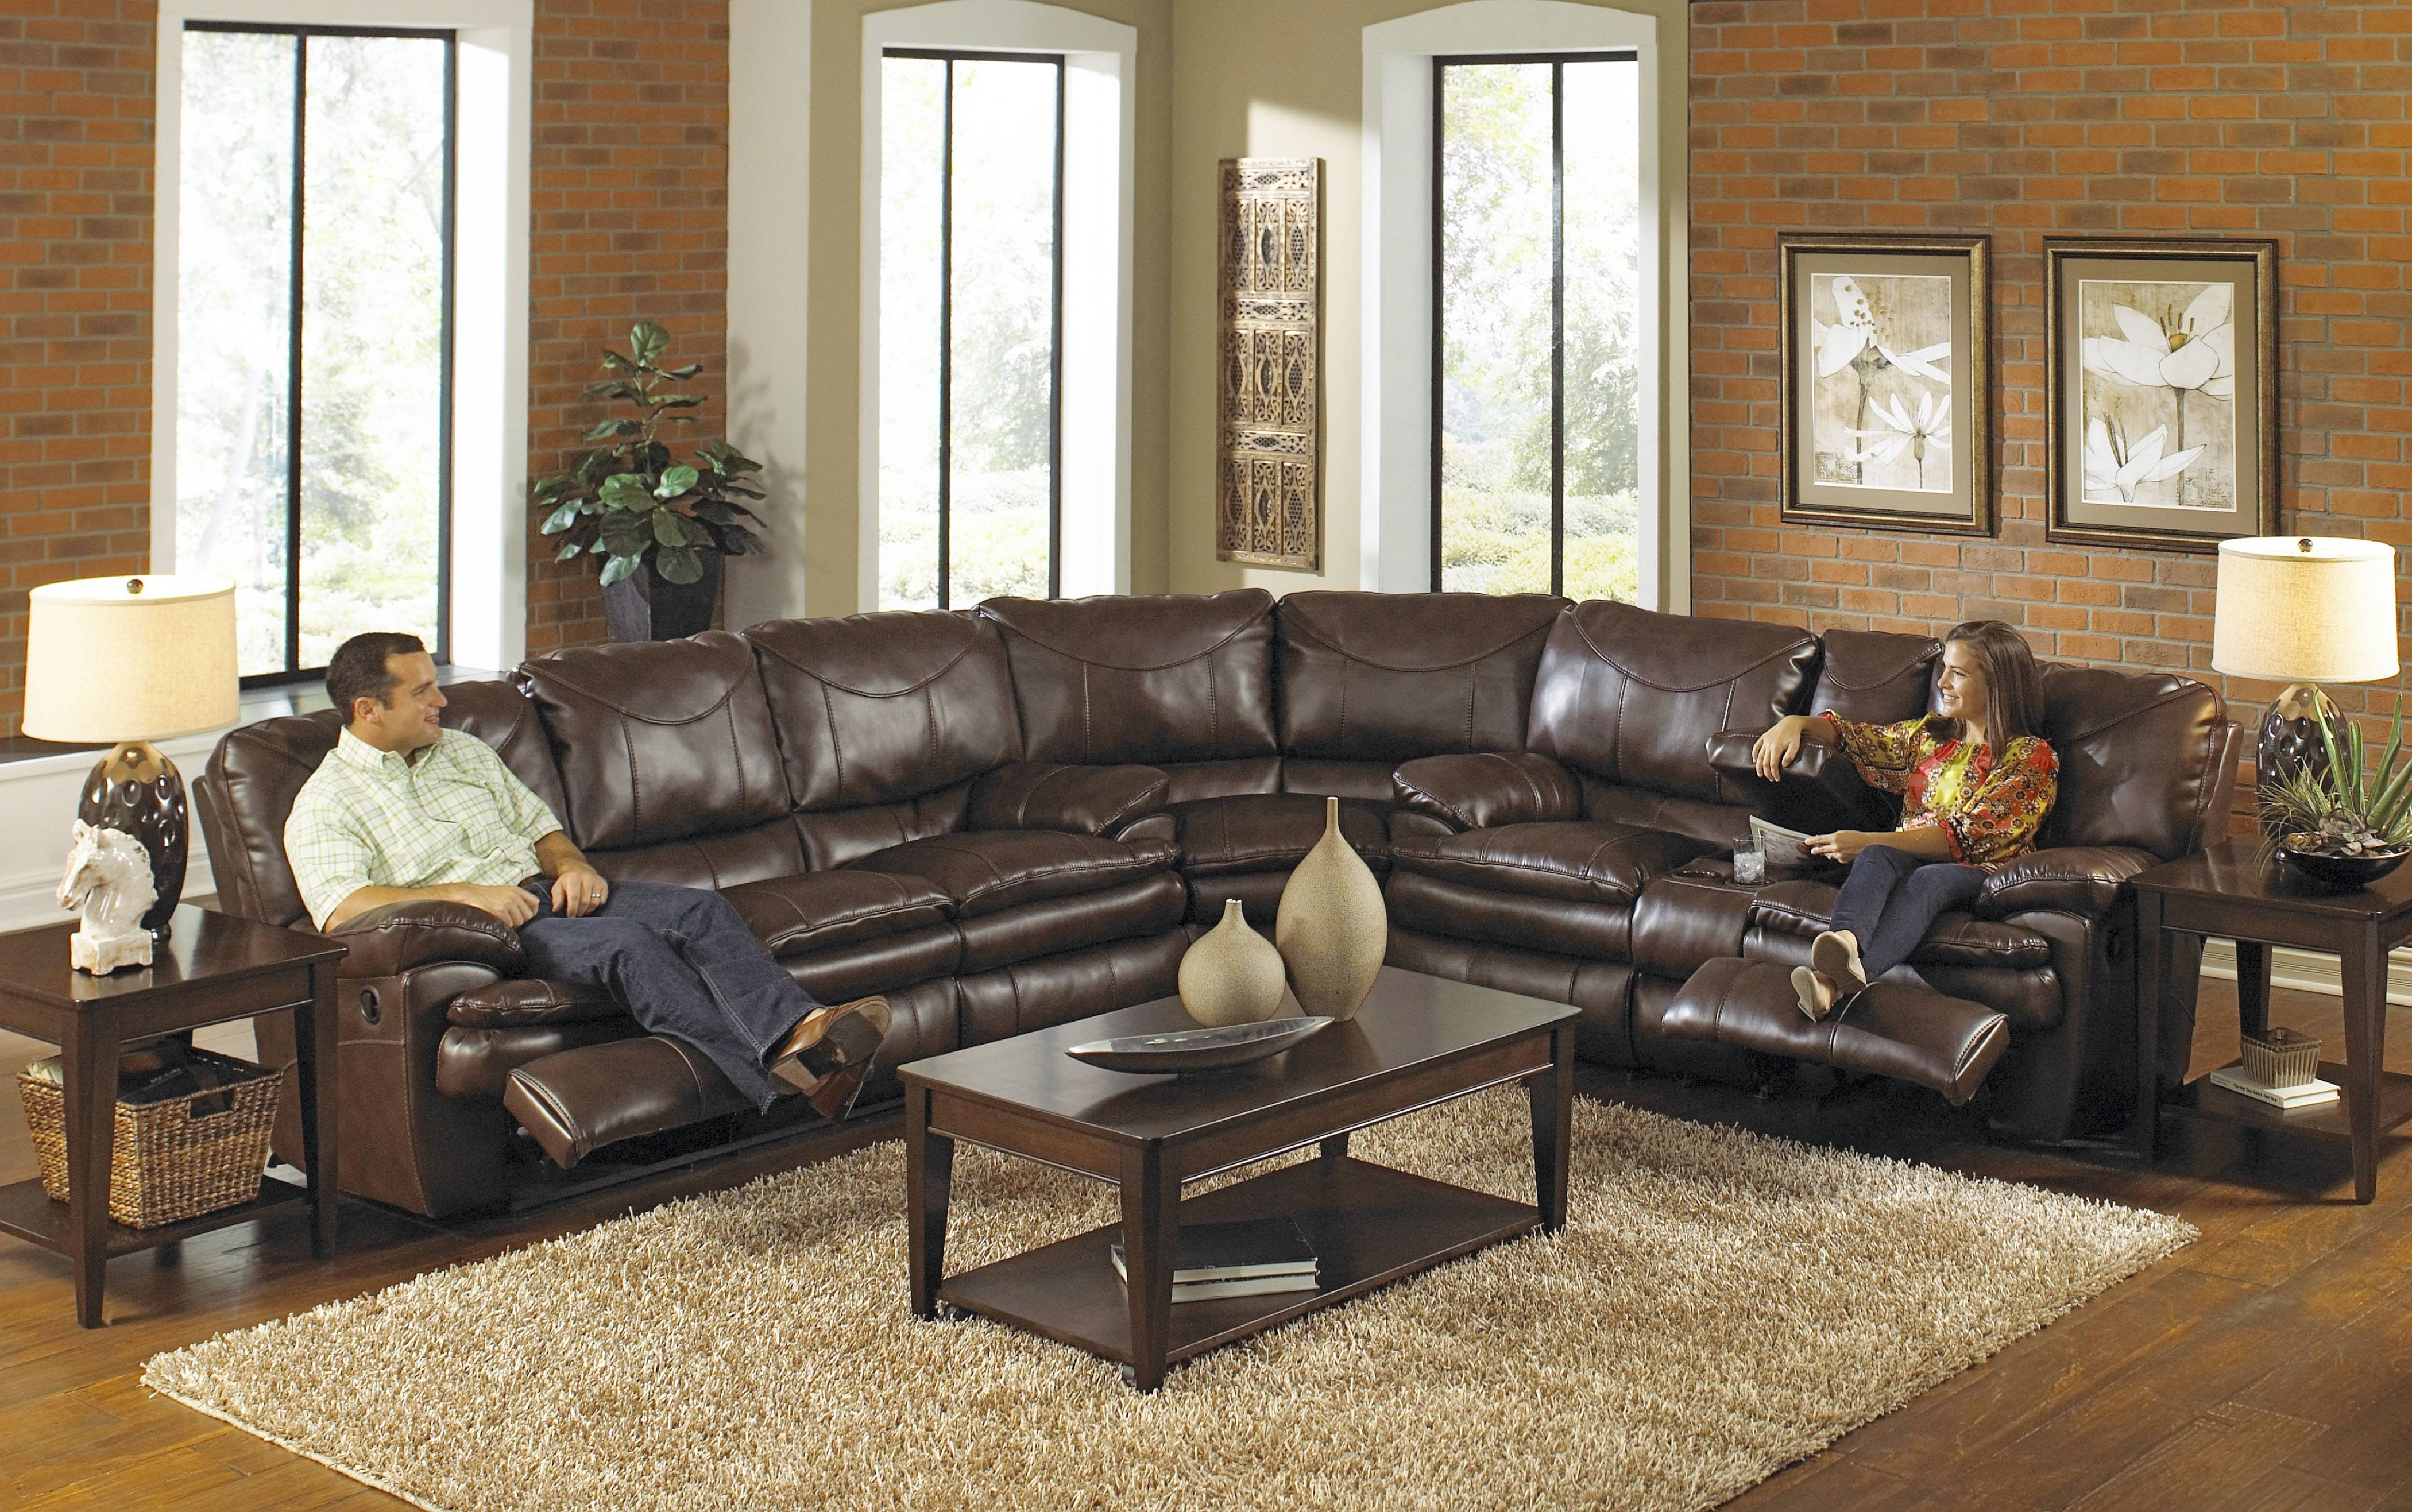 Best Sectional Sleeper Sofa With Recliners 12 In Sectional Sofas intended for Denver Sleeper Sofas (Image 2 of 15)